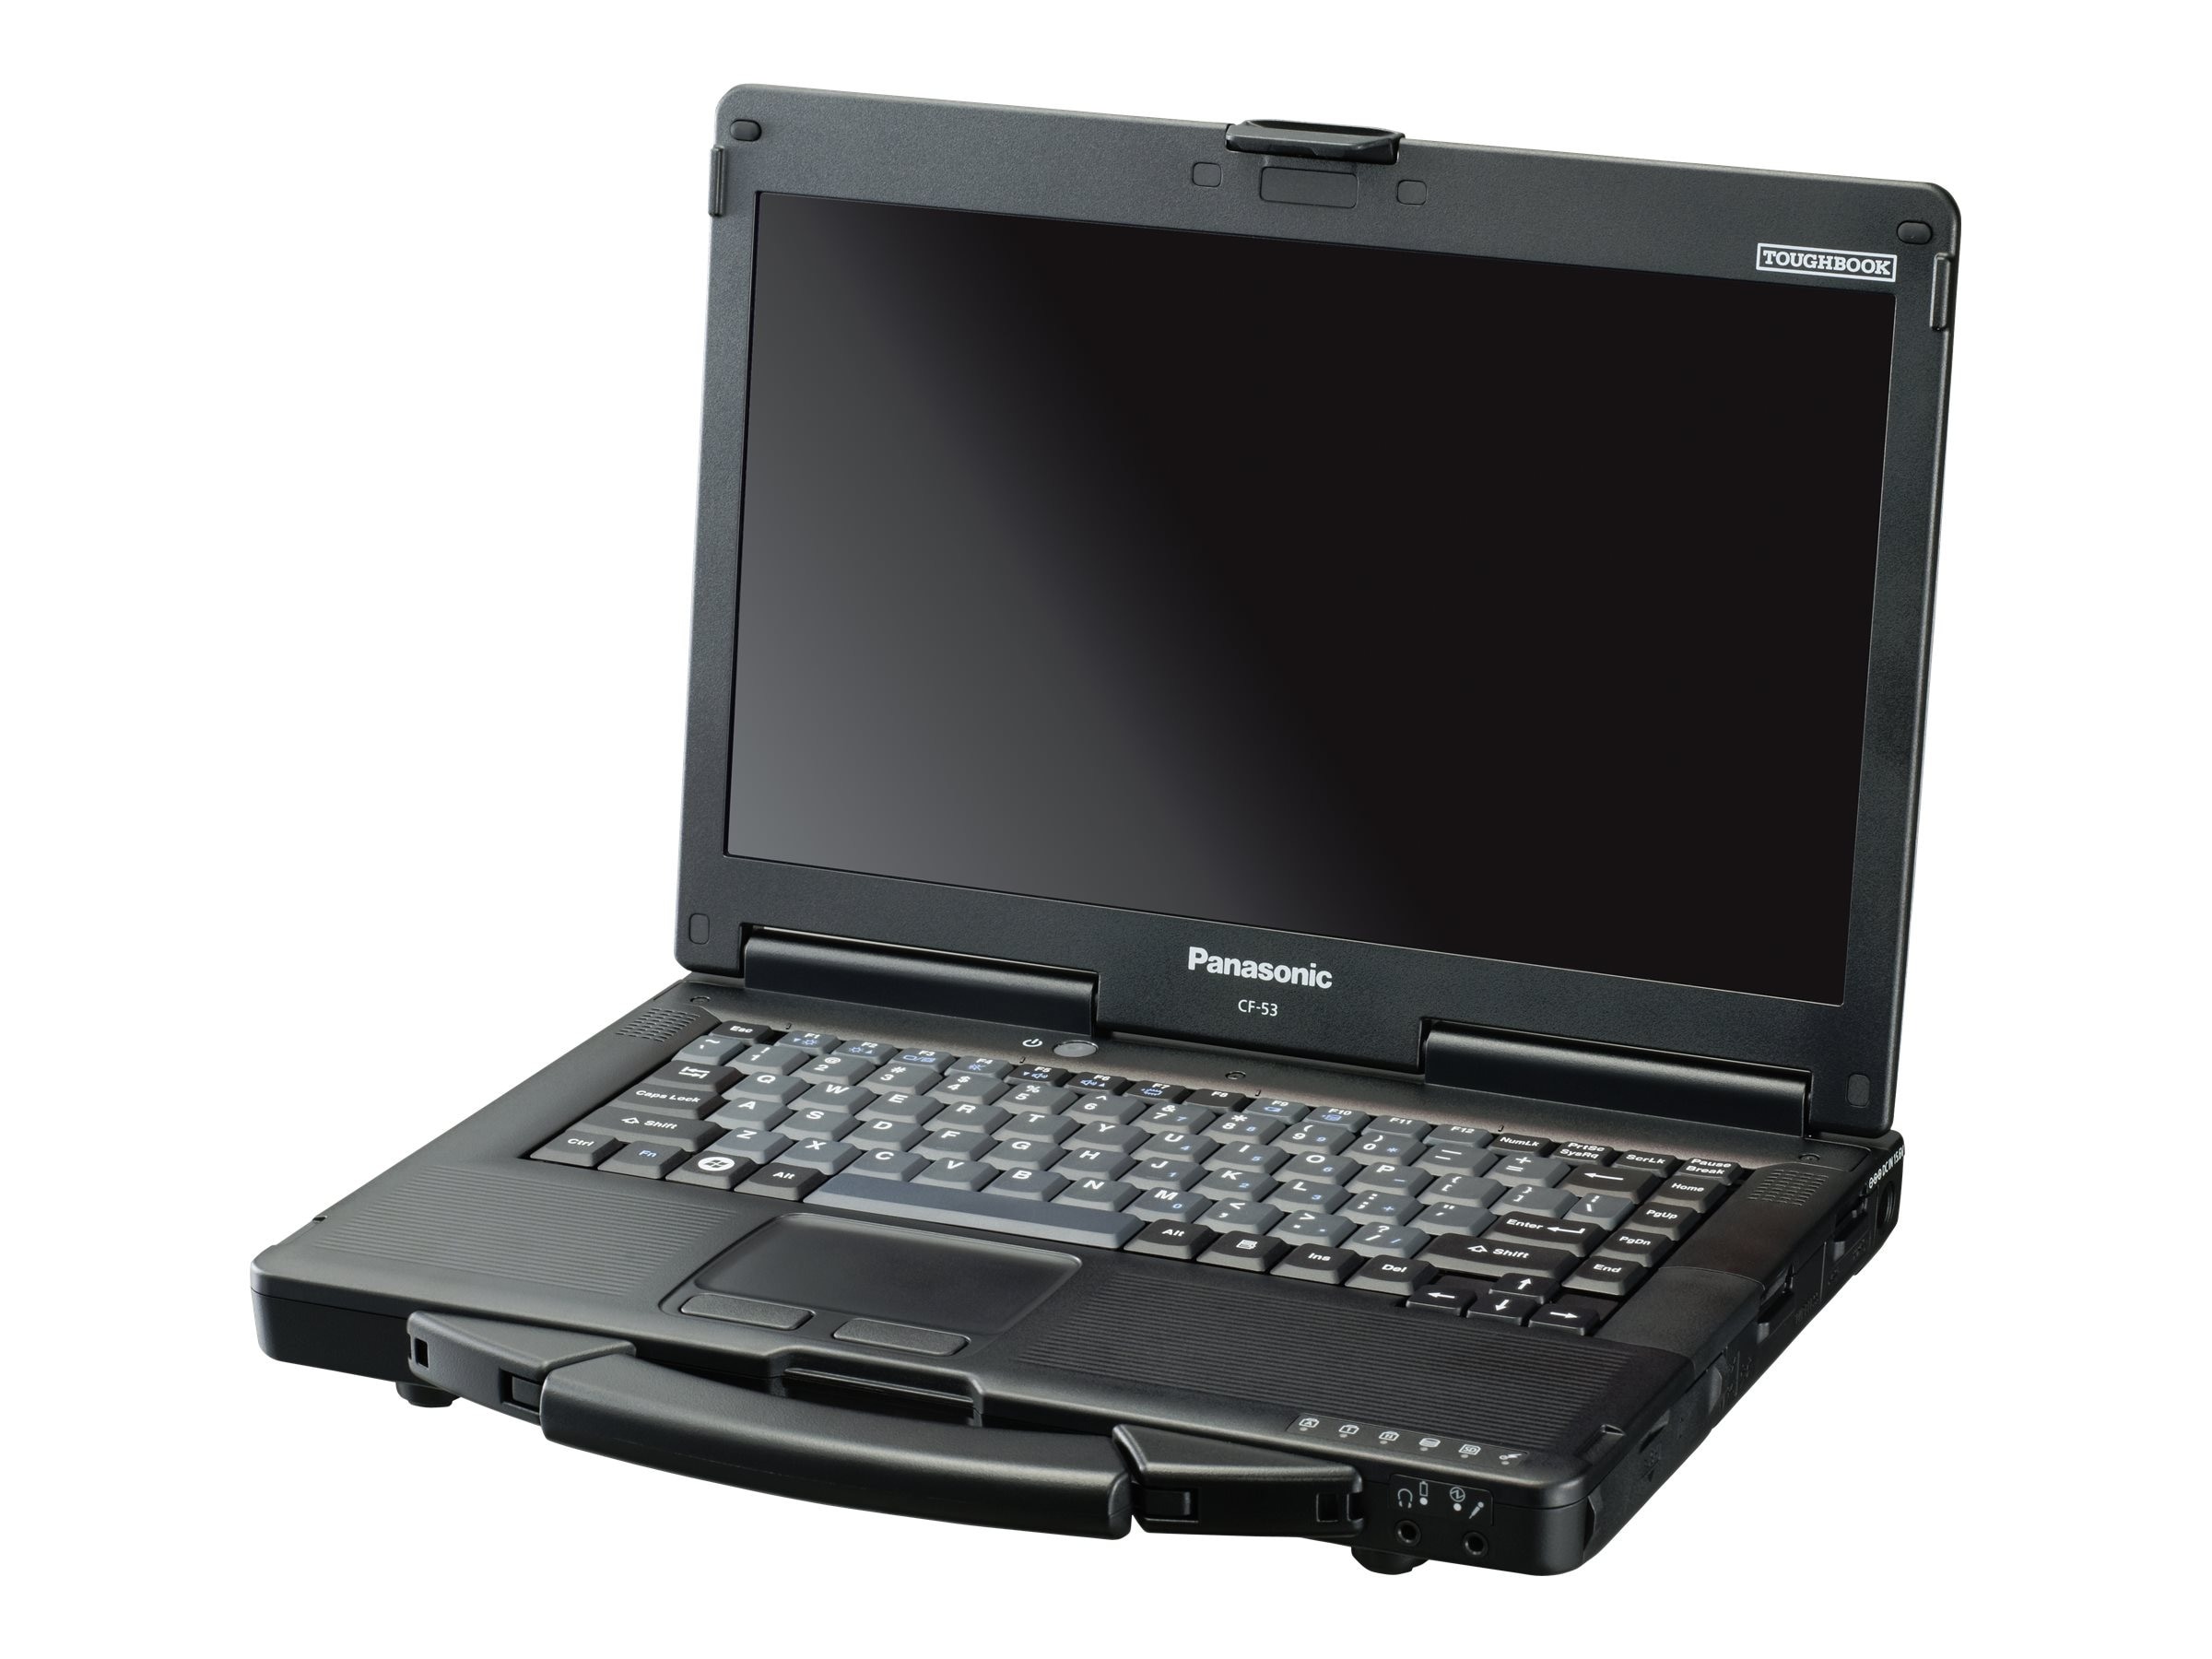 Panasonic Toughbook 53 Core i5-4310U 2.0GHz vPro LITE 14 HD W7-W8.1P COA, CF-532JCZACM, 17697086, Notebooks